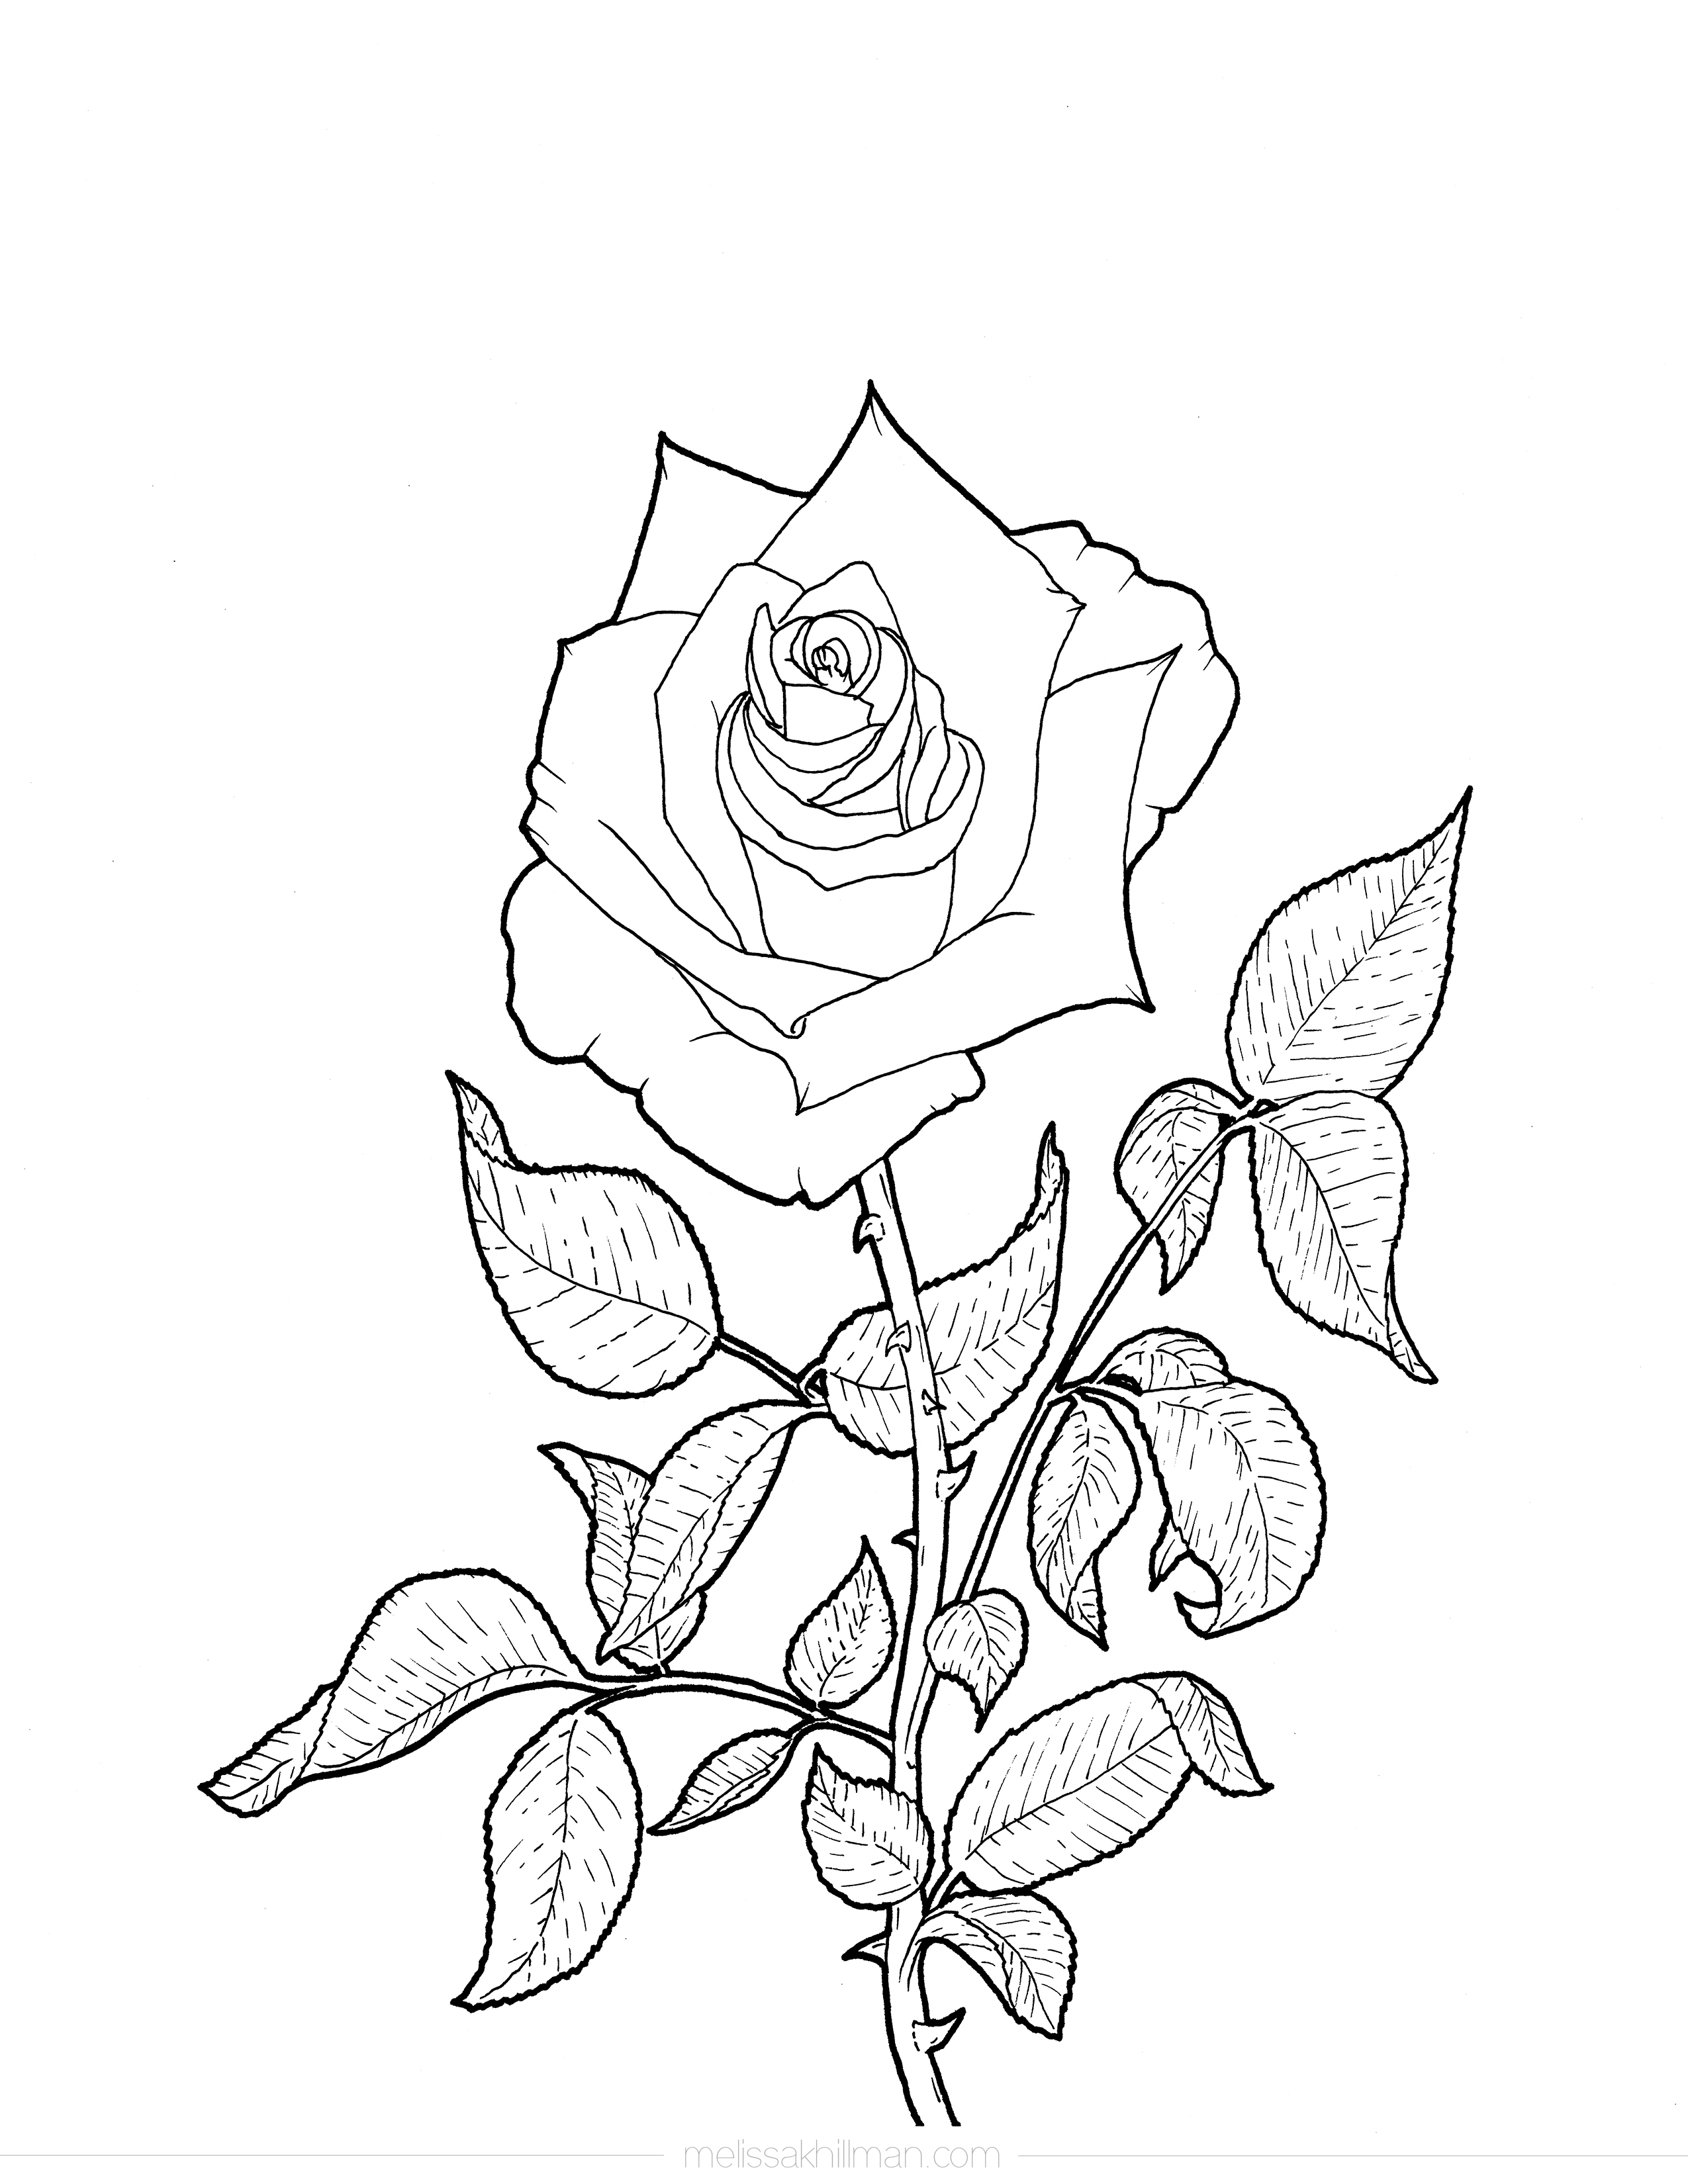 rose coloring page roses coloring pages getcoloringpagescom coloring rose page